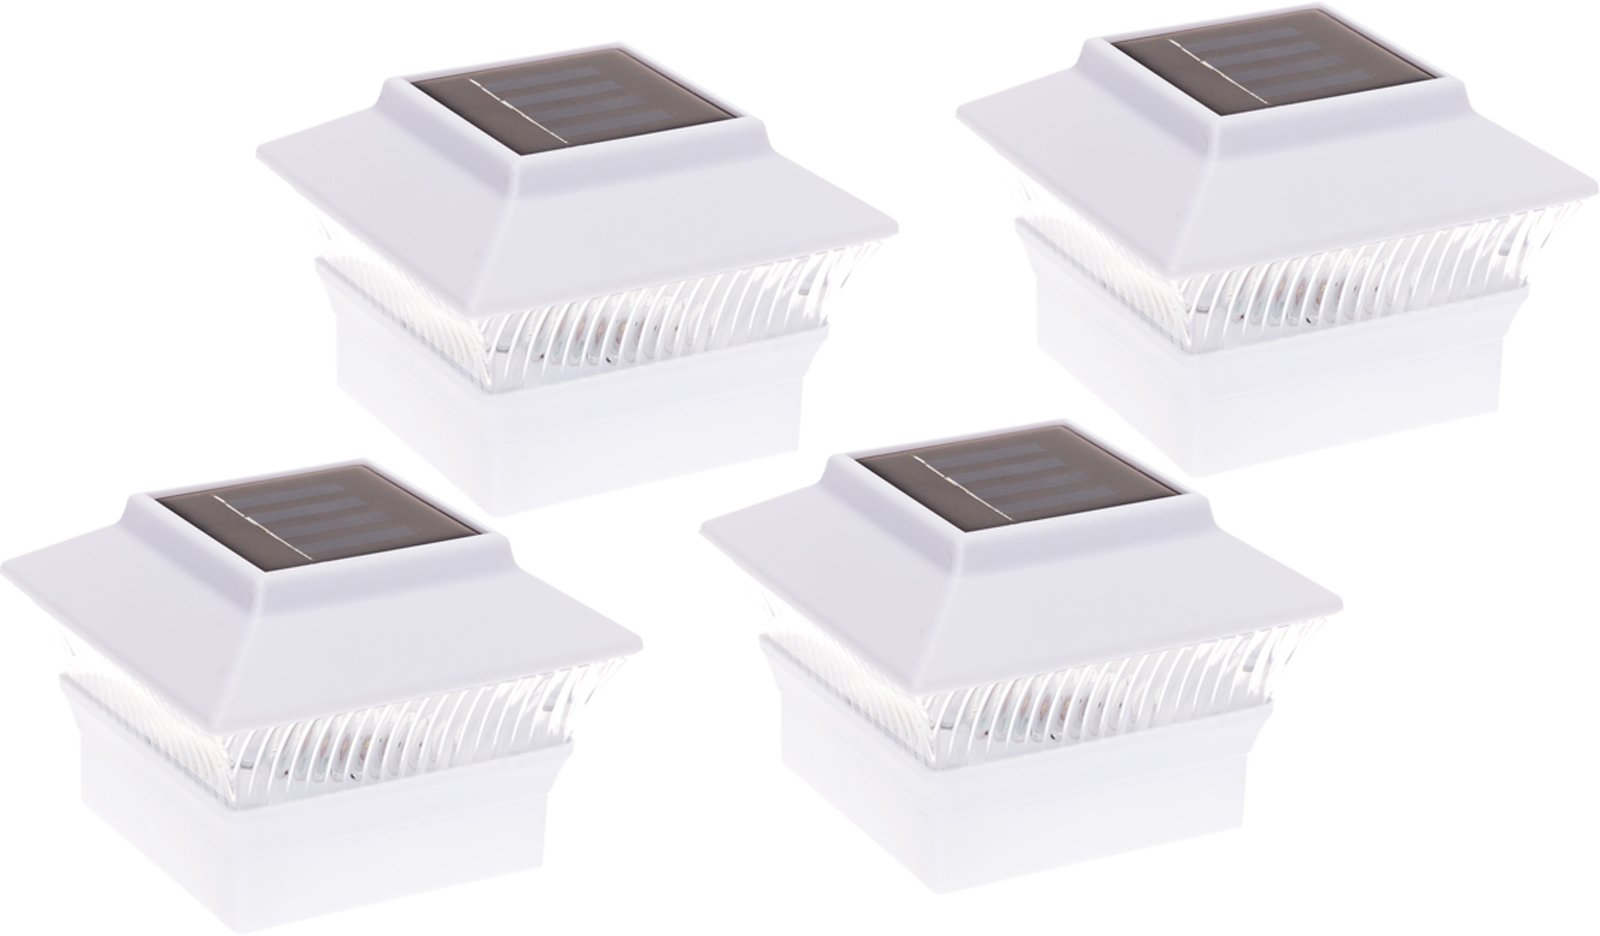 GreenLighting 4 Pack Solar Power Square Outdoor Post Cap Lights for 4x4 PVC Posts by (White)